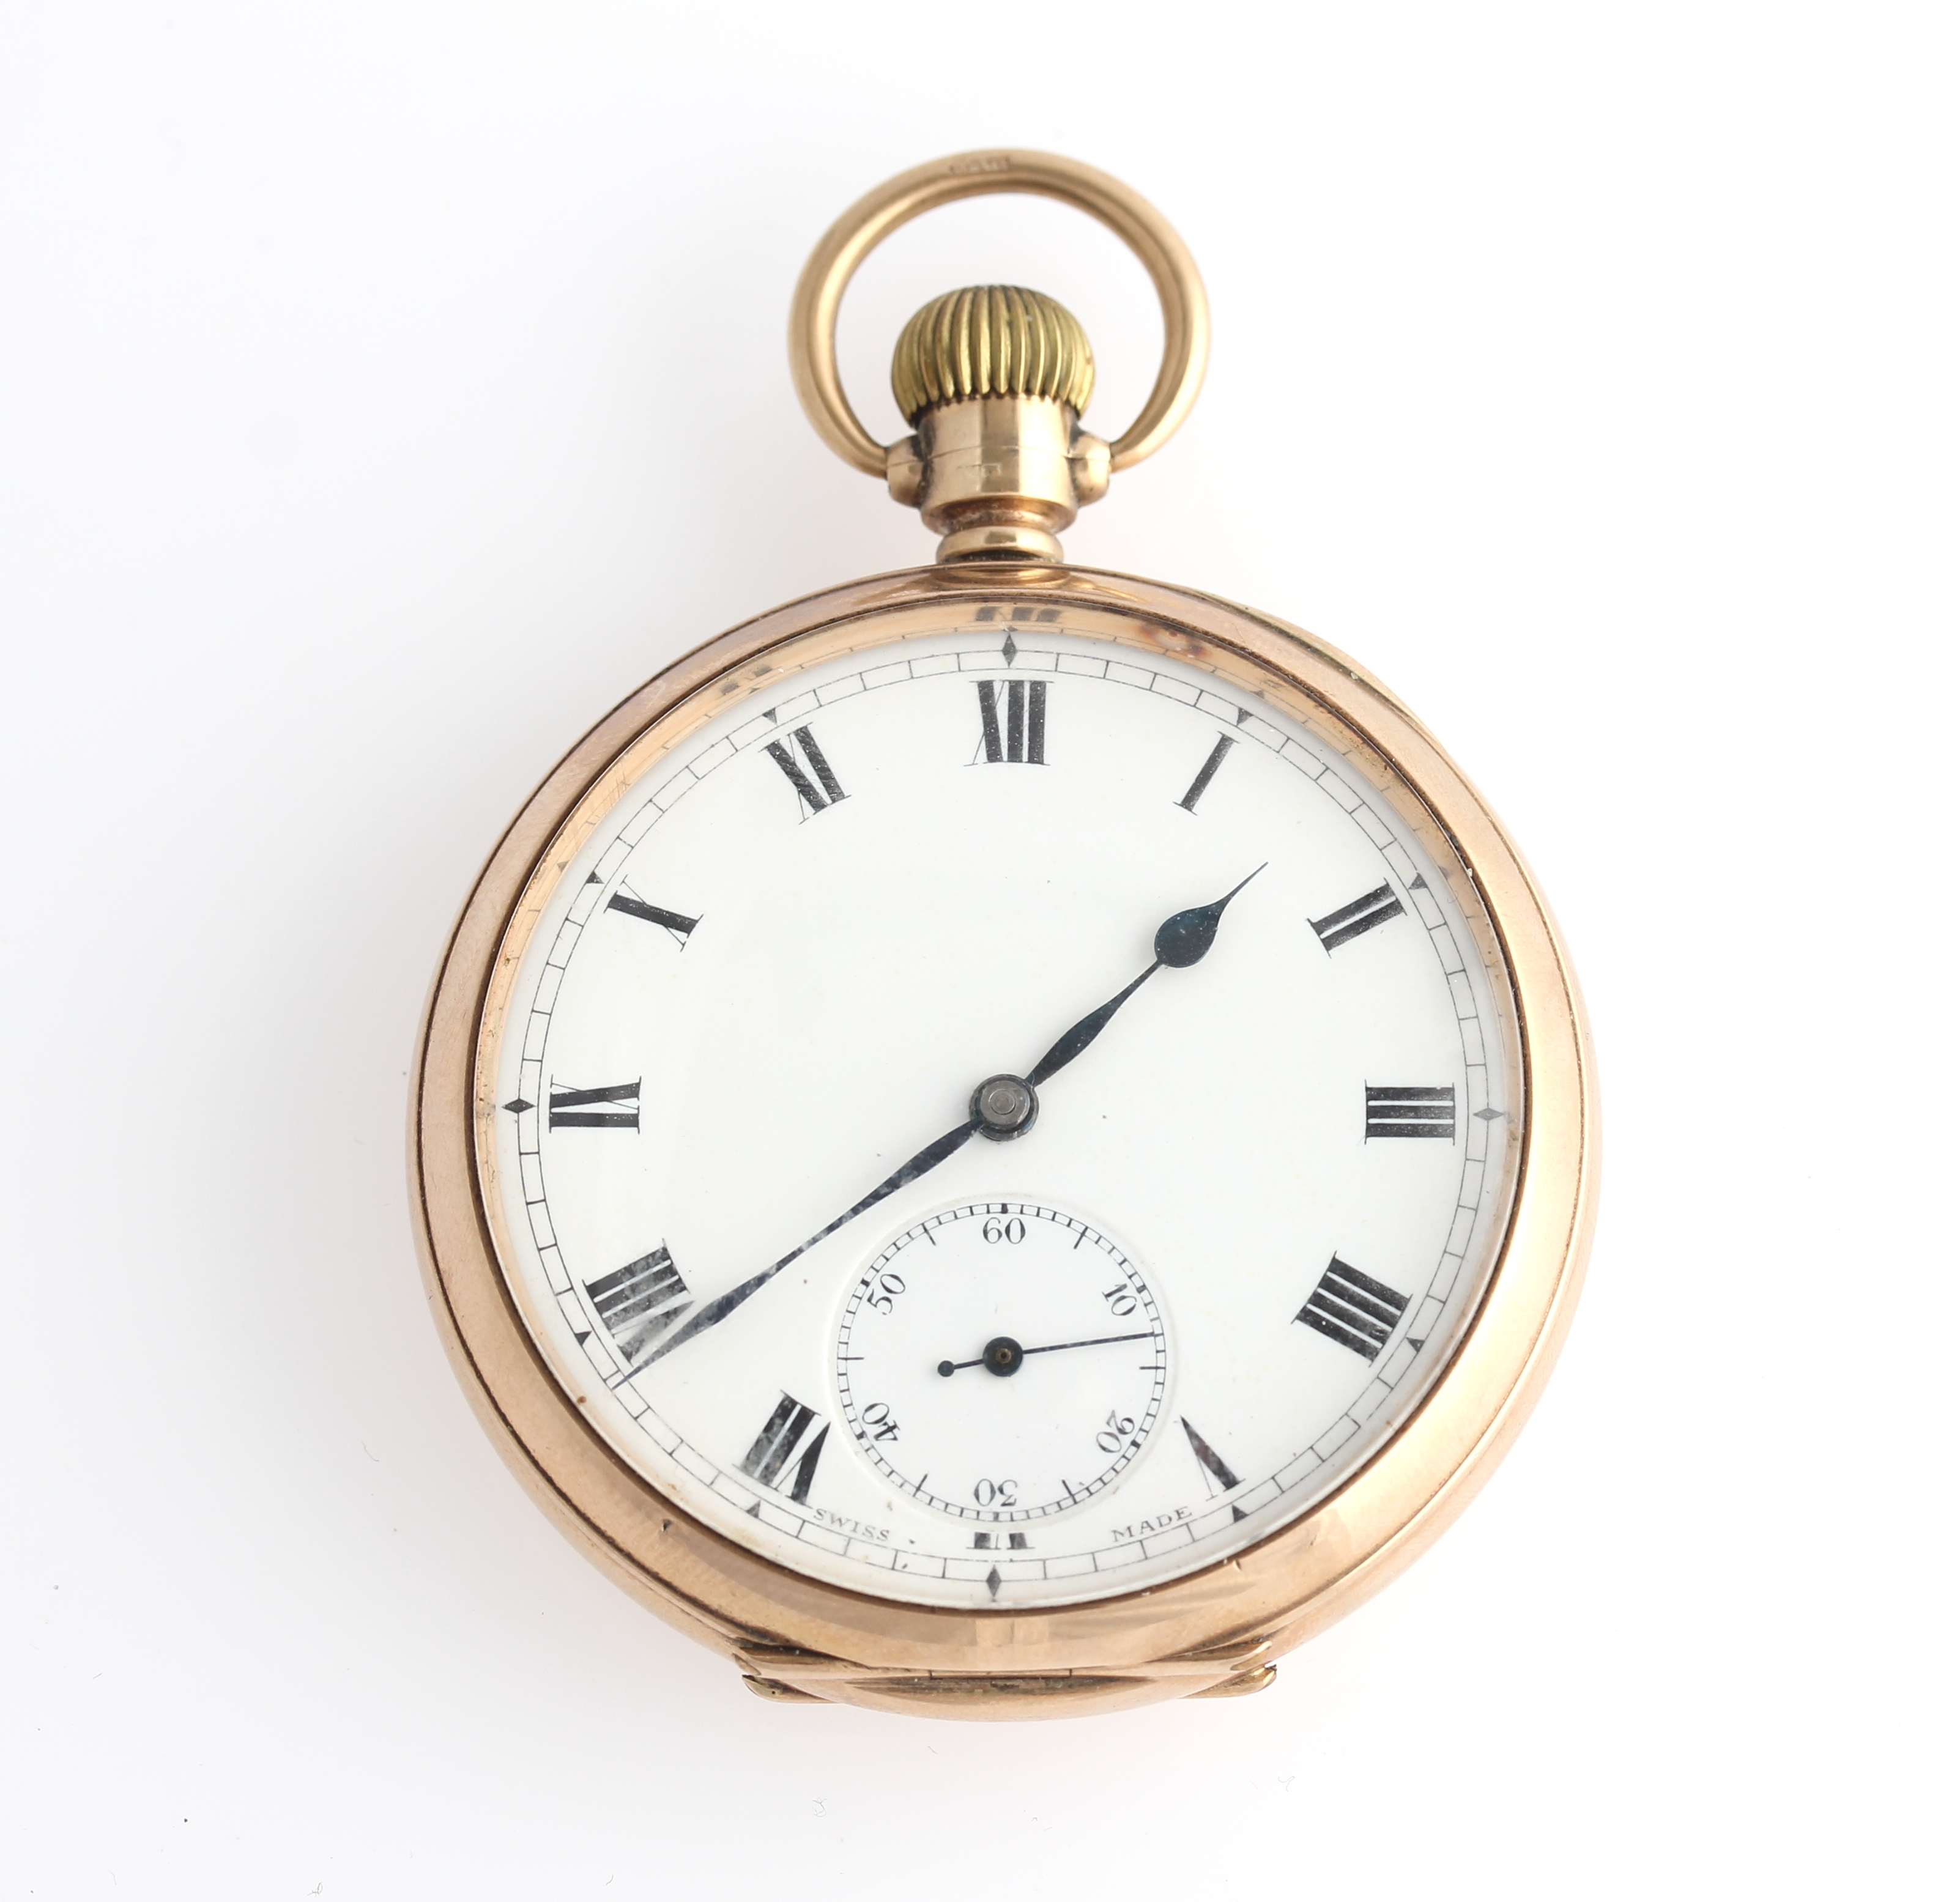 Lot 8 - A 9ct yellow gold cased, open face crown wind pocket watch, the white enamel dial having hourly